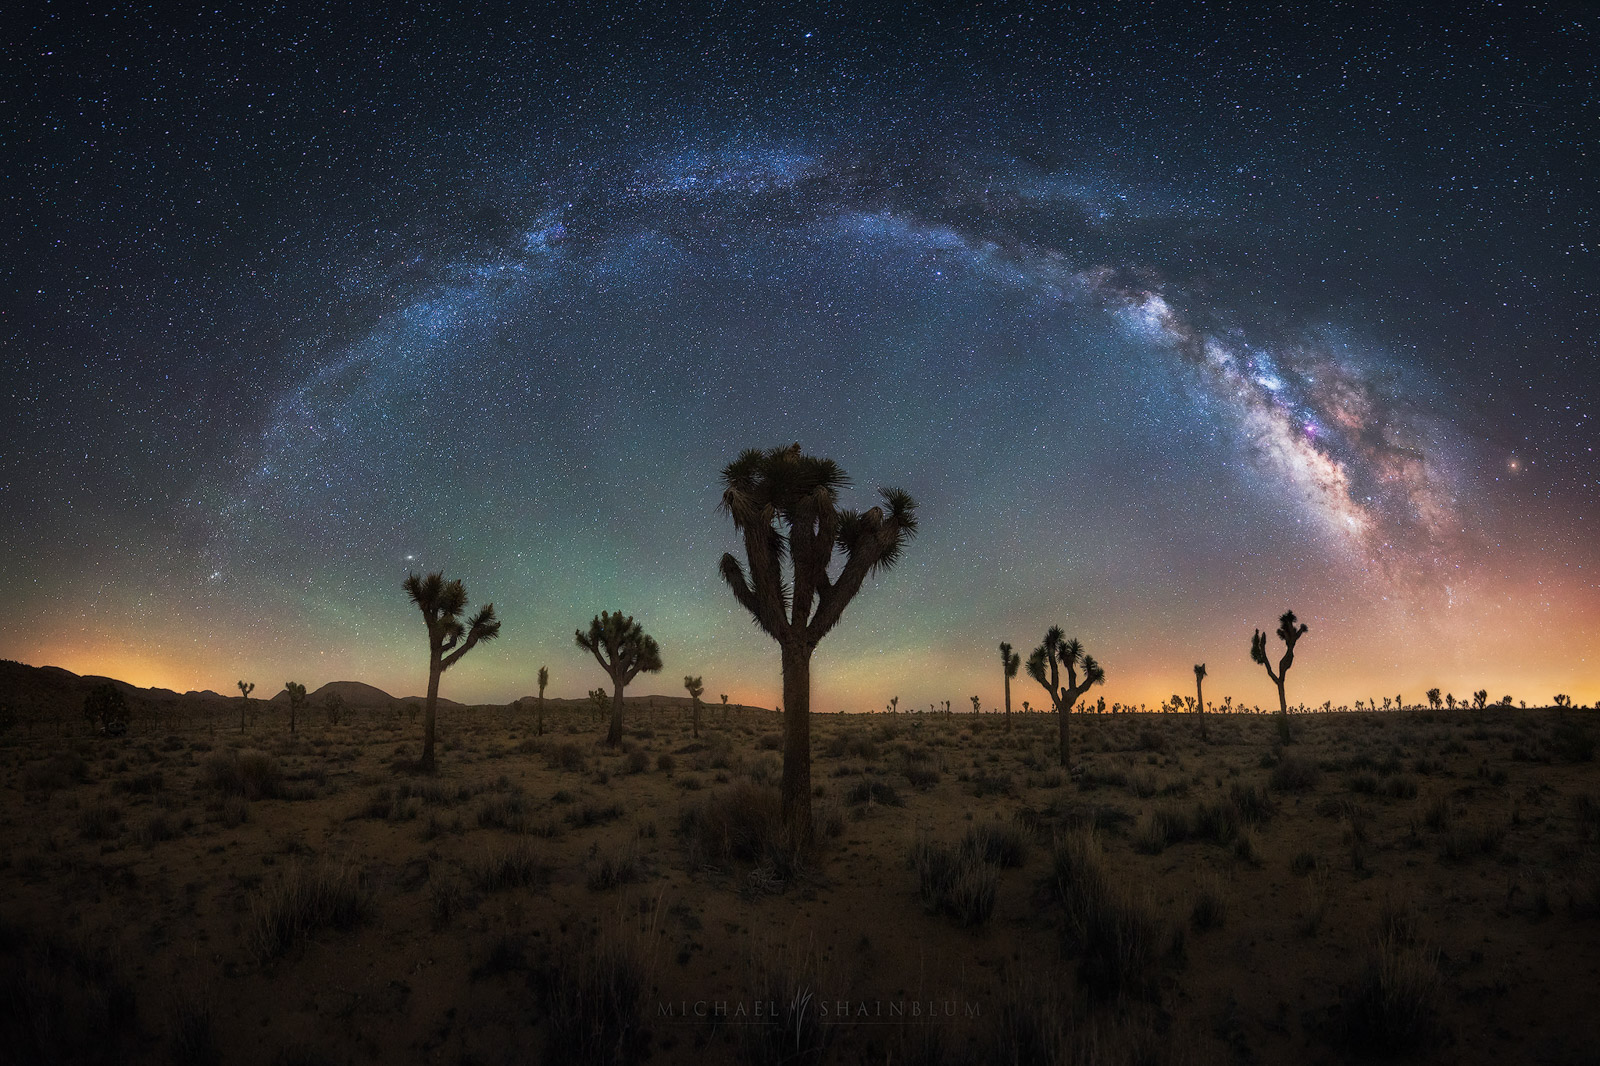 California, Long Exposure, astrophotography, california night sky, galaxy, milky way, milkyway, night photos, night sky photography, star photography, photo